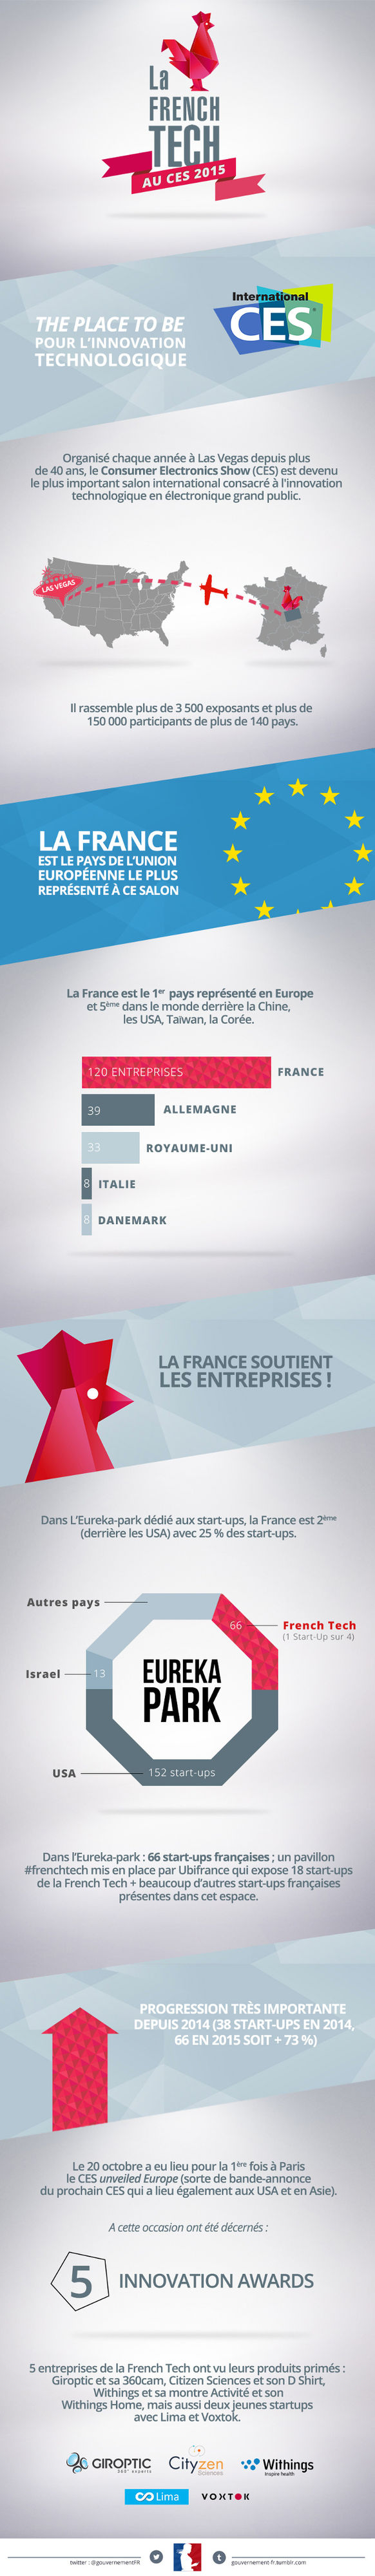 frenchtech_ces2015_illustration_large